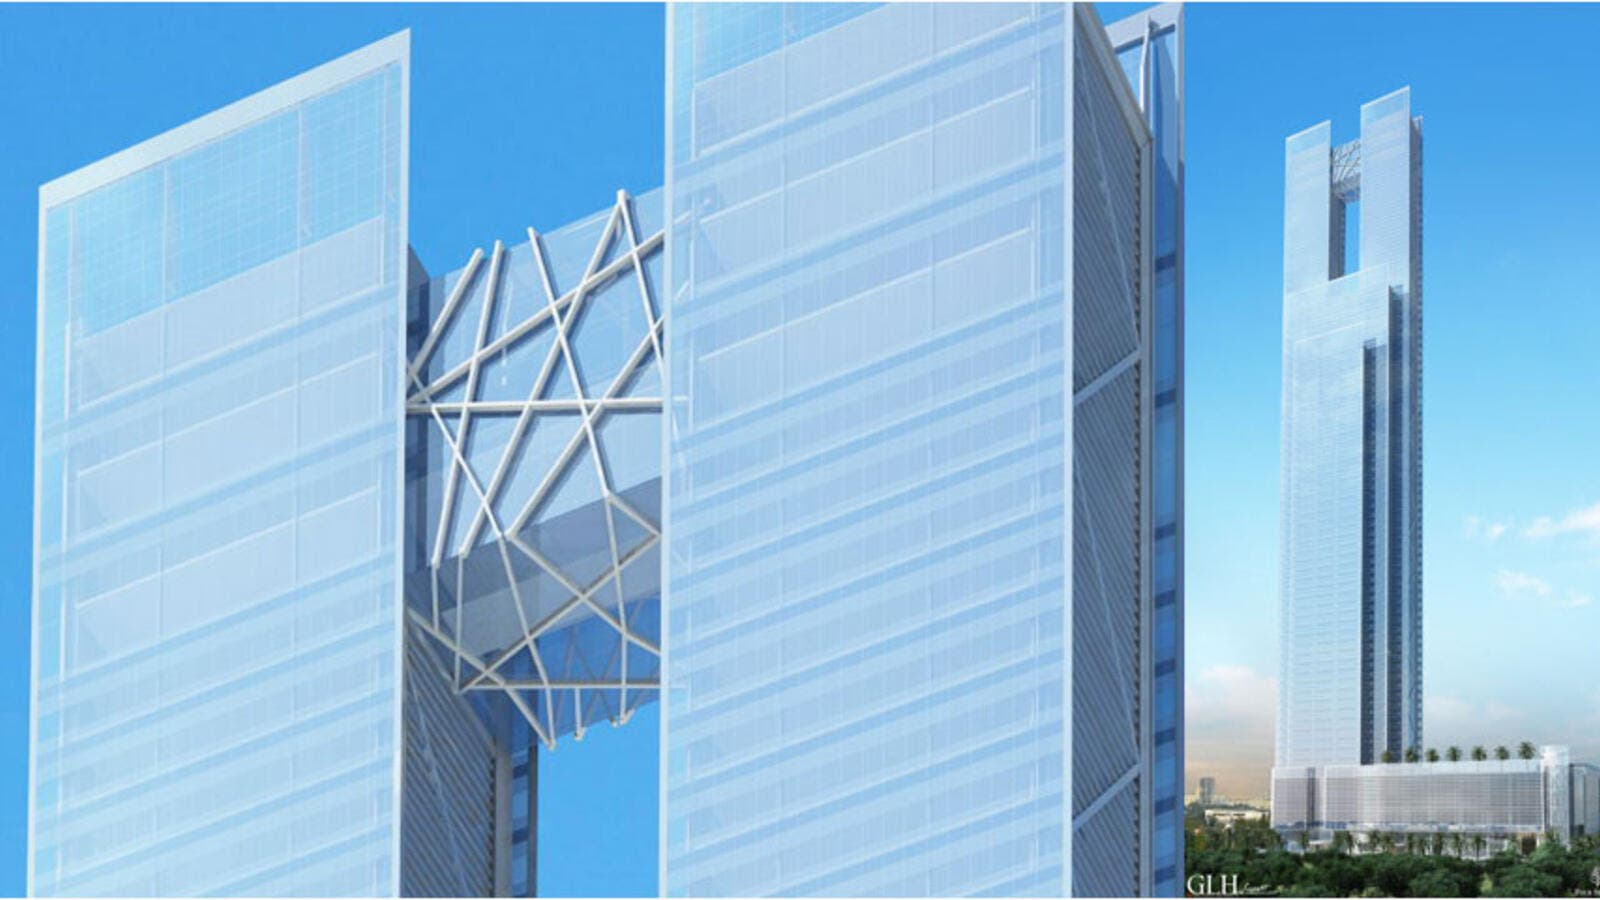 Kuwait's first Four Seasons Hotel, Burj Alshaya will open in Kuwait Tower at the end of 2016. (The Big 5 Hub)